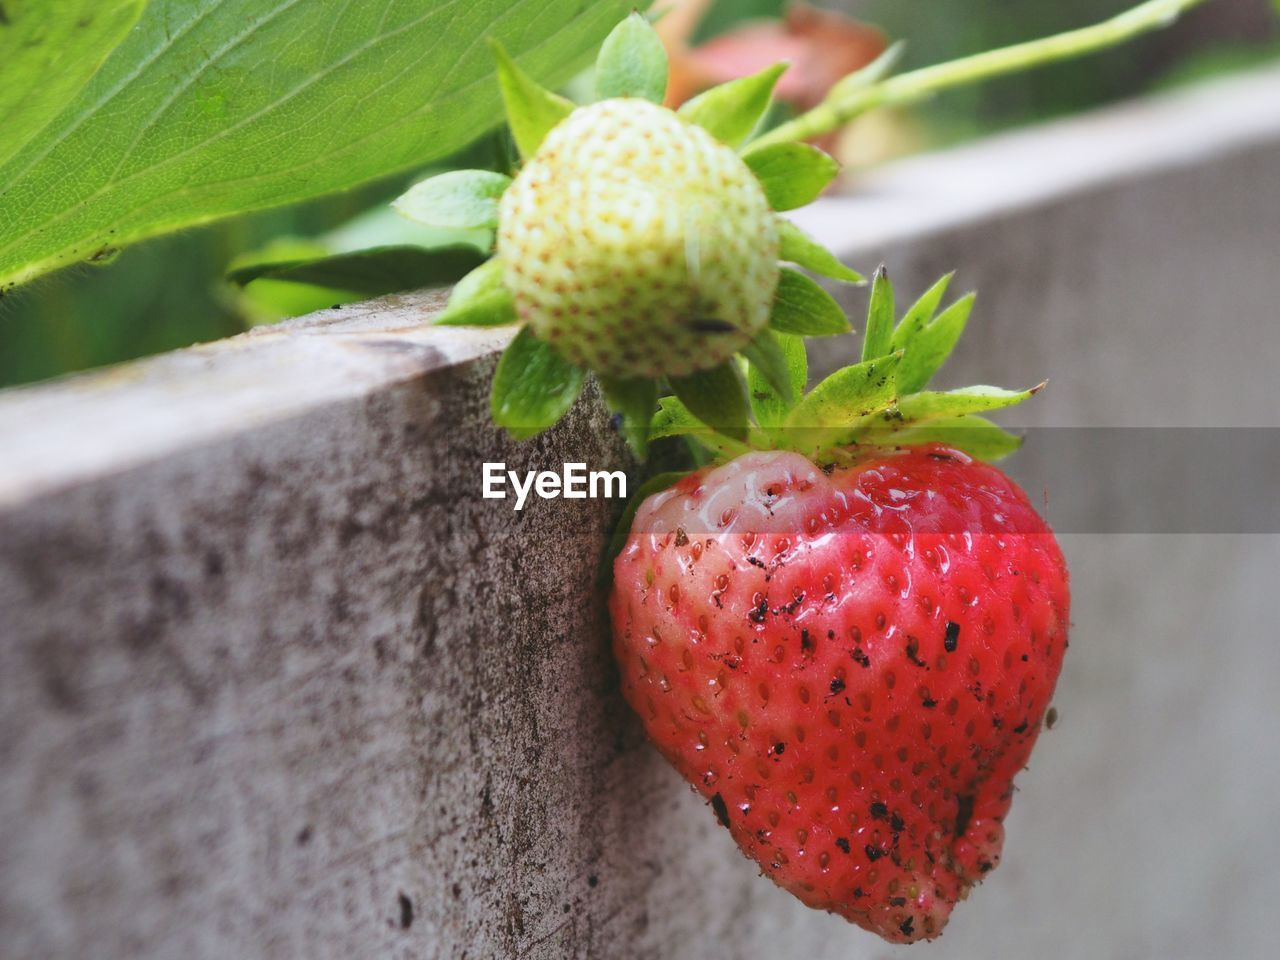 food, food and drink, healthy eating, fruit, red, freshness, close-up, wellbeing, growth, no people, plant, leaf, plant part, day, focus on foreground, strawberry, berry fruit, nature, green color, ripe, outdoors, sepal